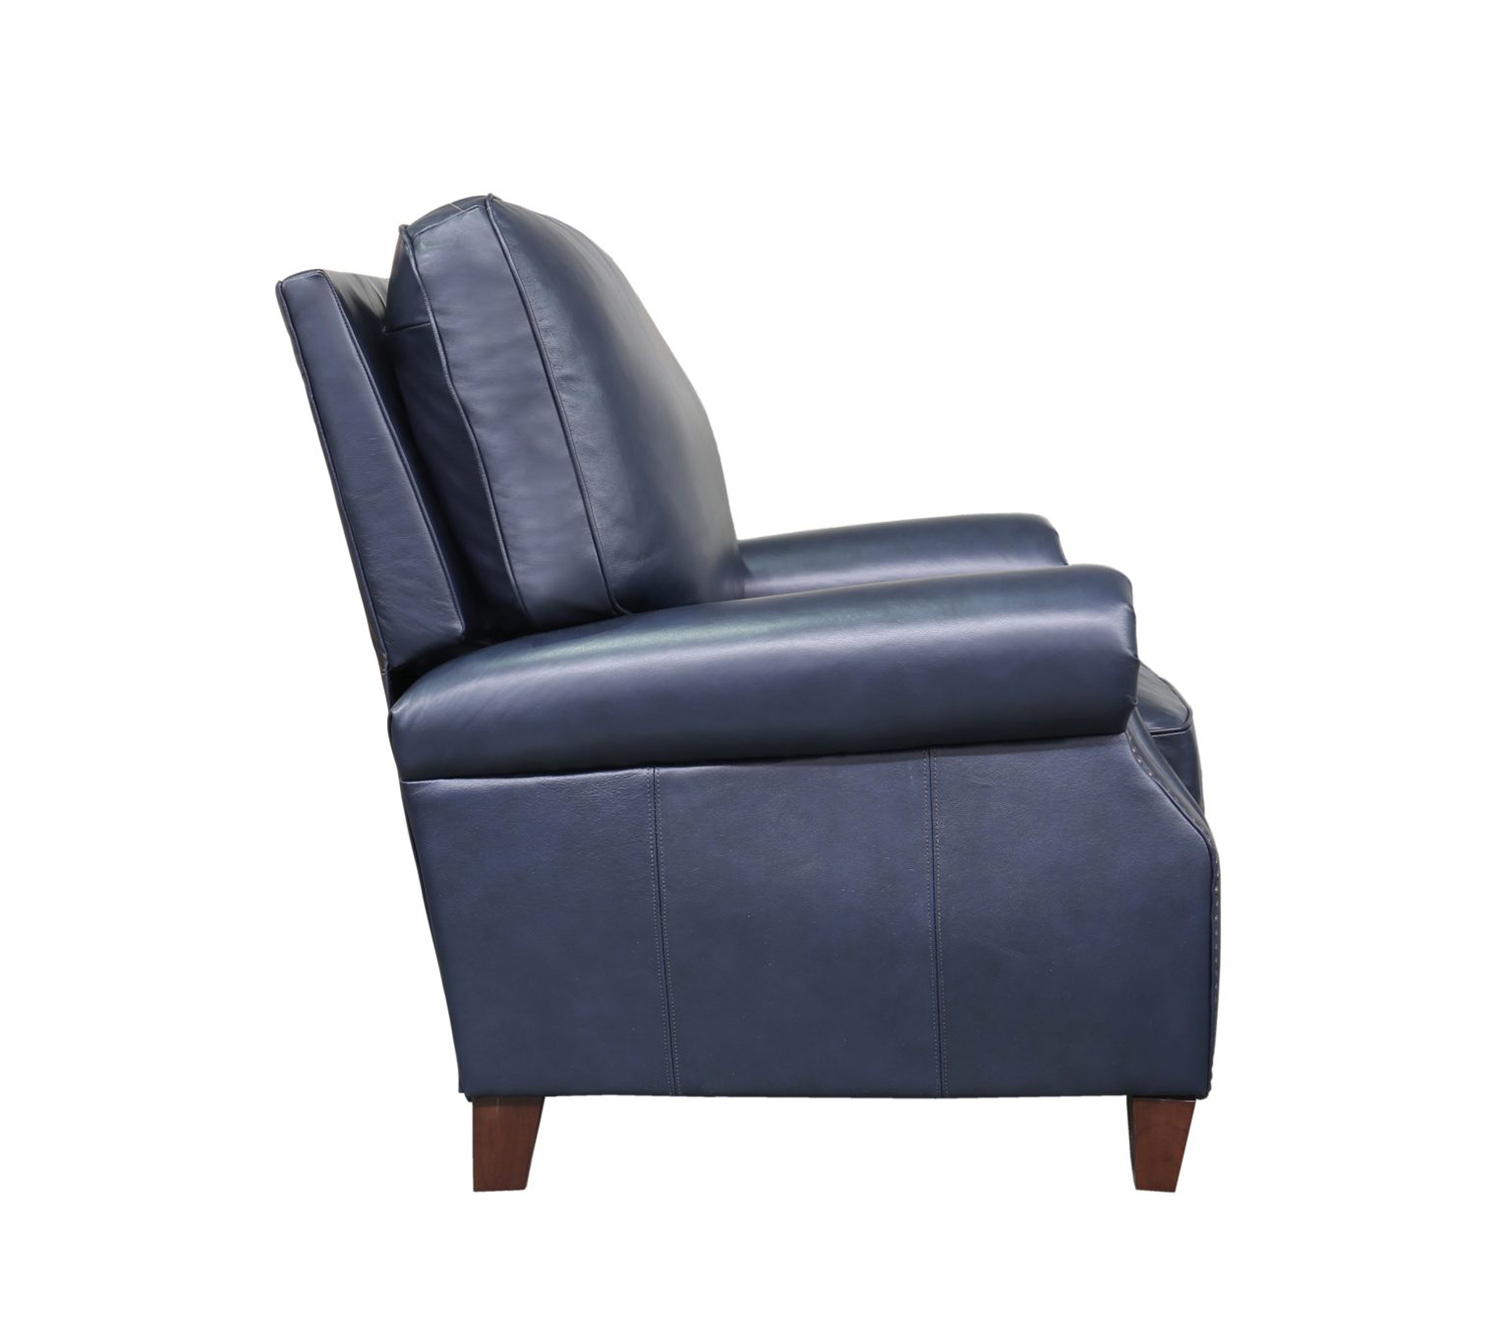 Barcalounger Briarwood Recliner Chair - Shoreham Blue/all leather